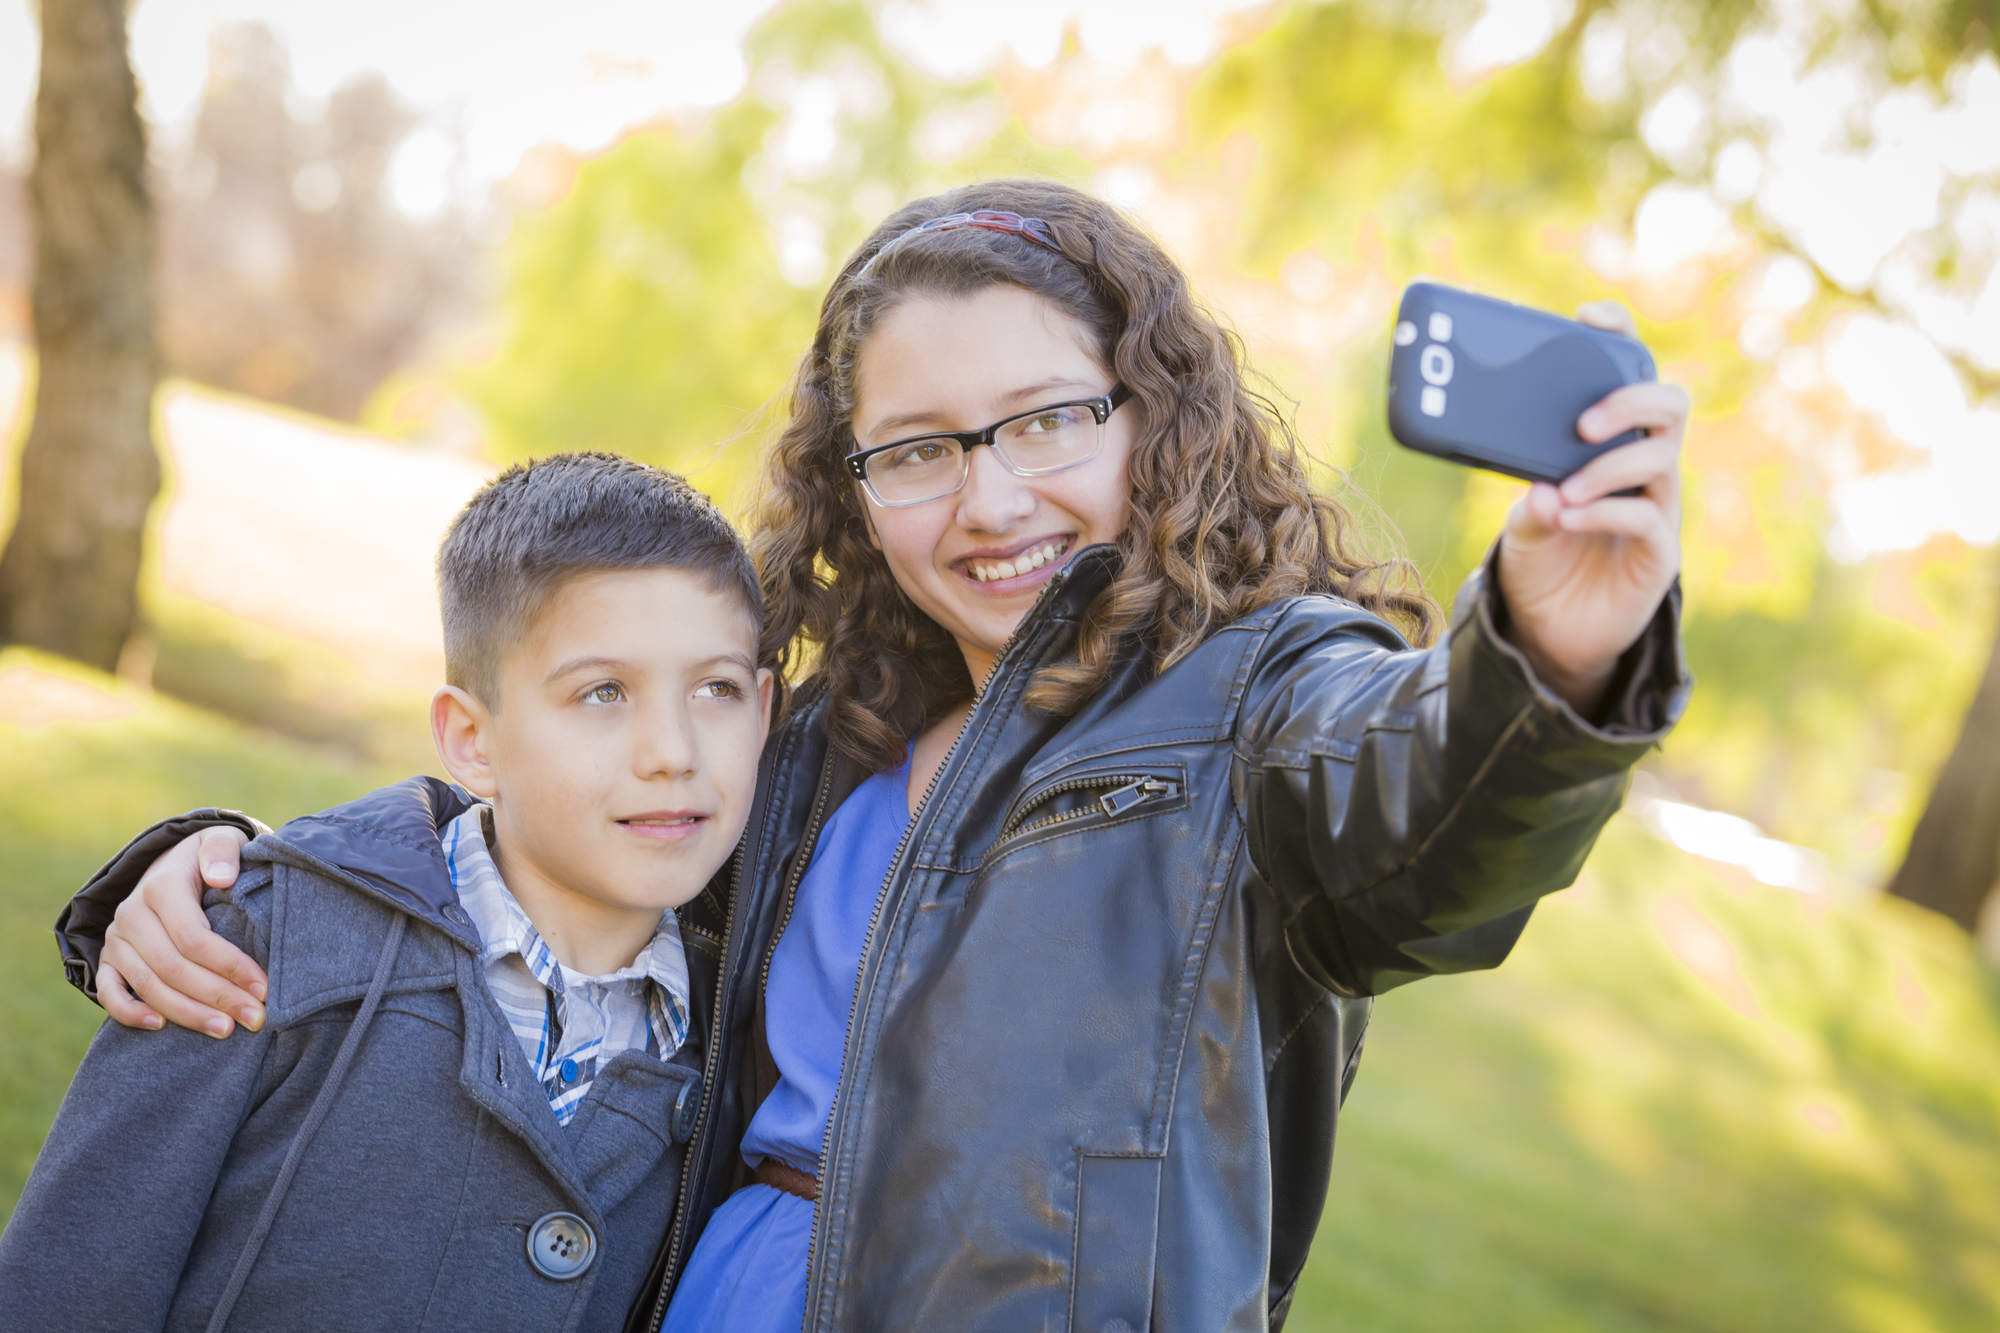 Brother and Sister Taking Cell Phone Picture of Themselves Outdoors At The Park.